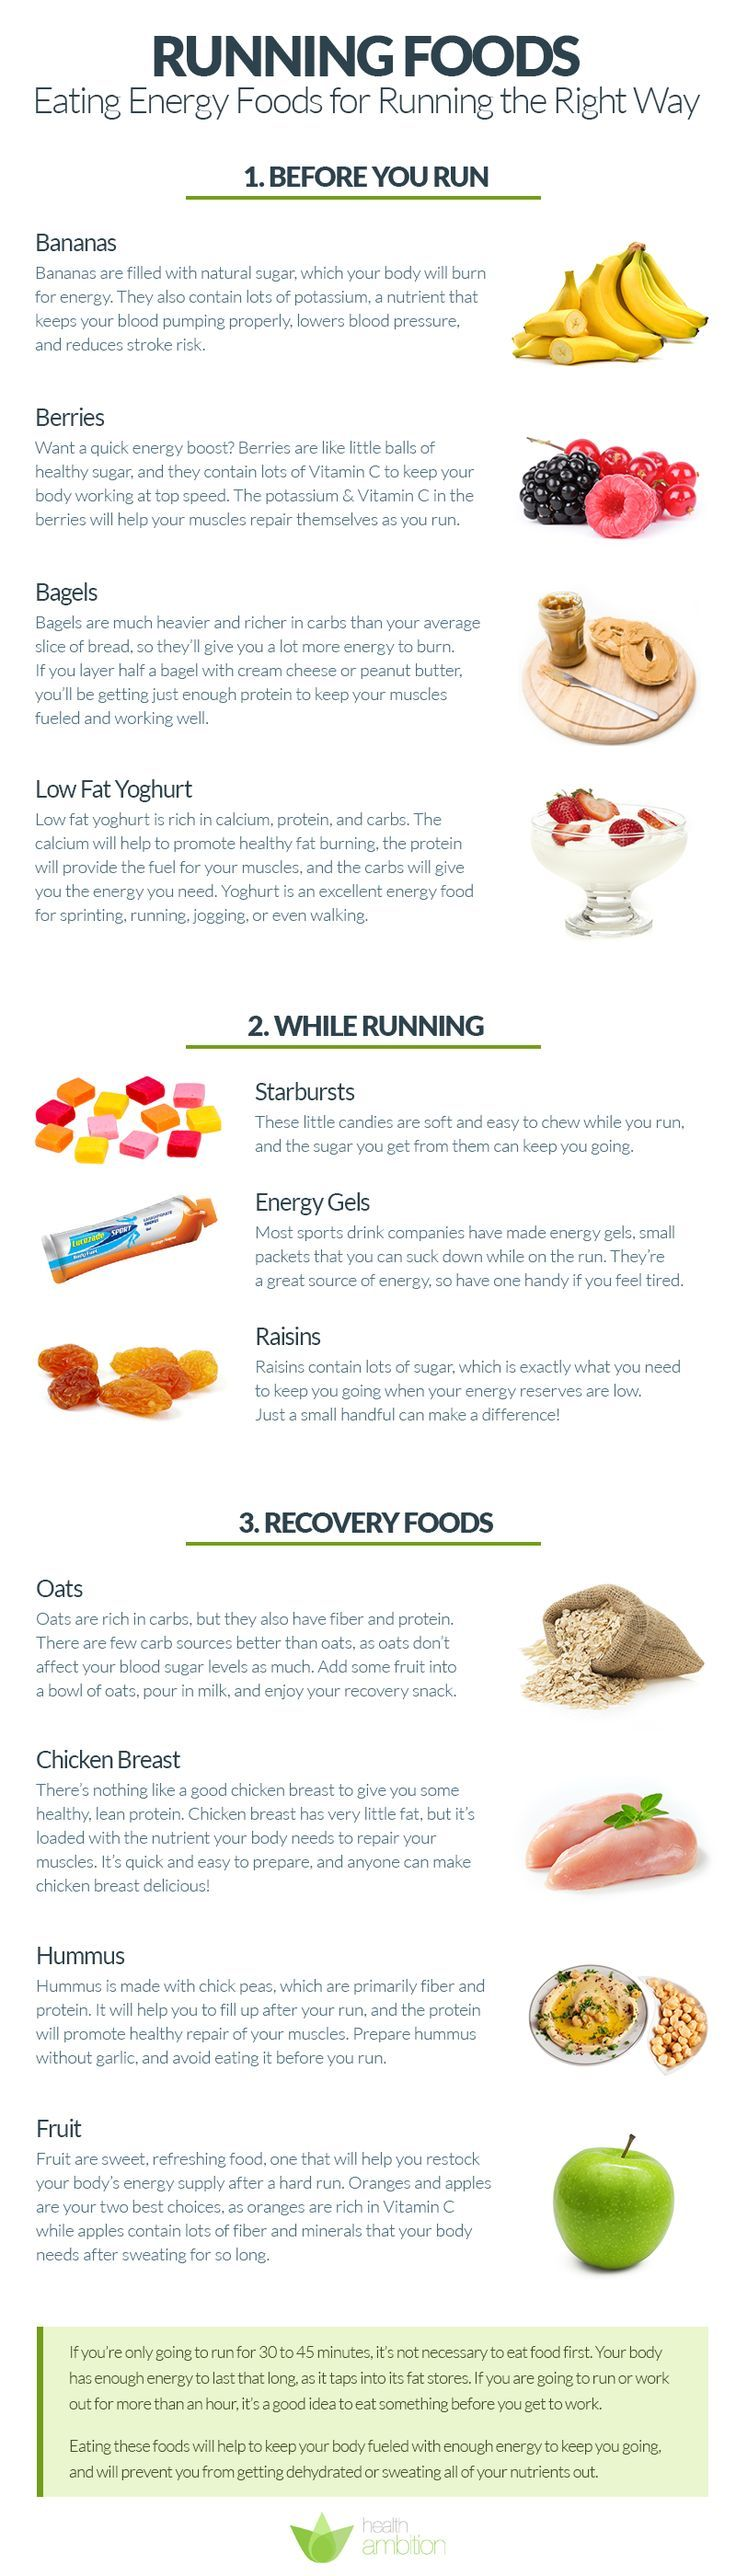 Running Foods Eating Energy Foods For Running The Right